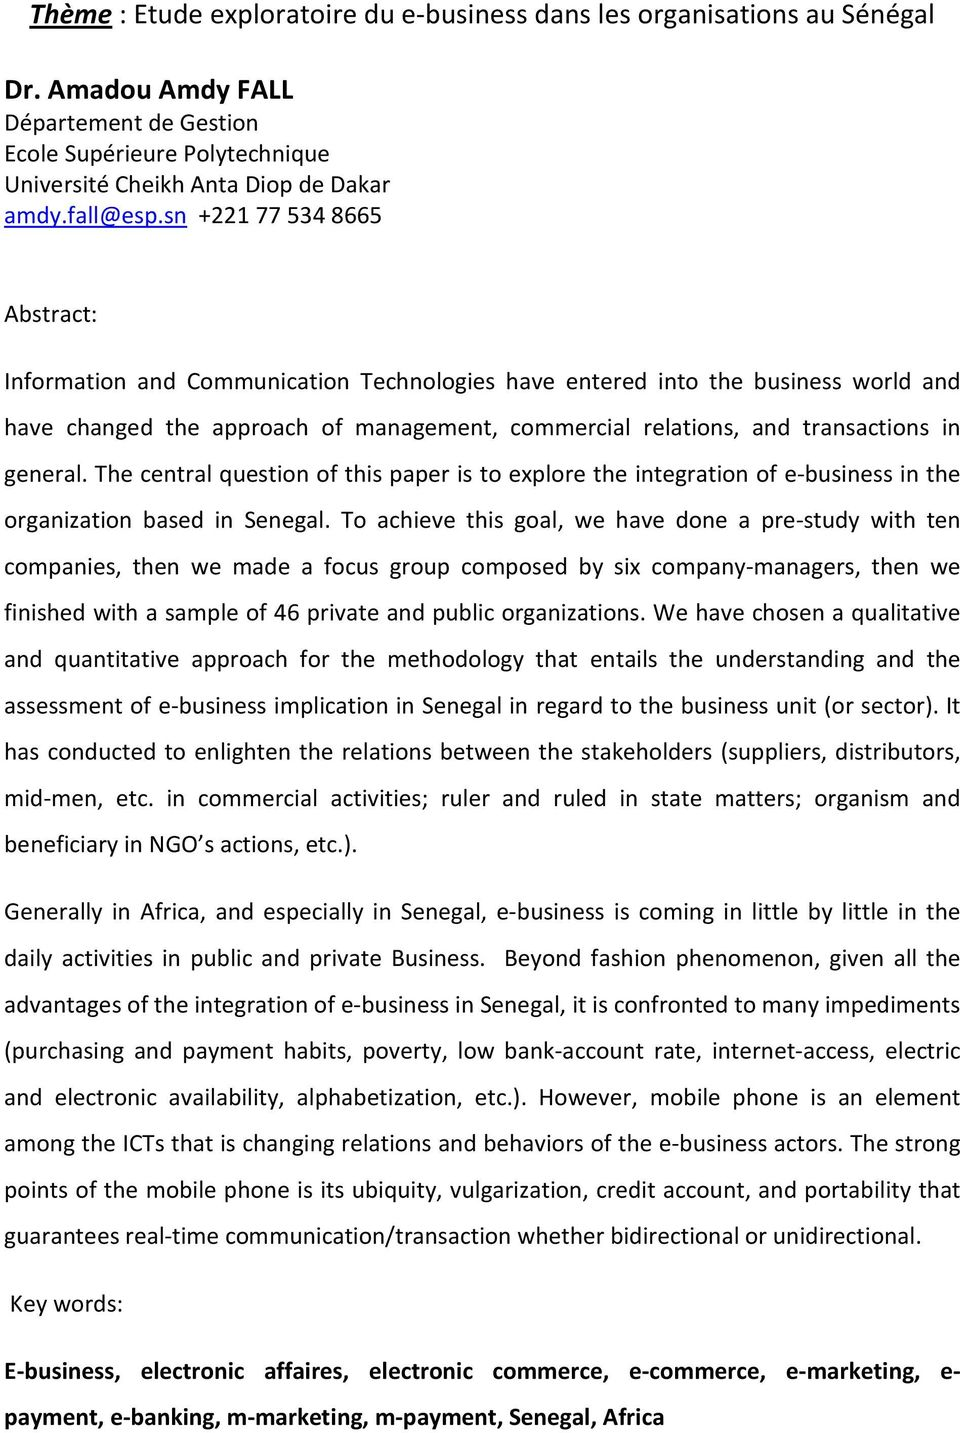 sn +221 77 534 8665 Abstract: Information and Communication Technologies have entered into the business world and have changed the approach of management, commercial relations, and transactions in